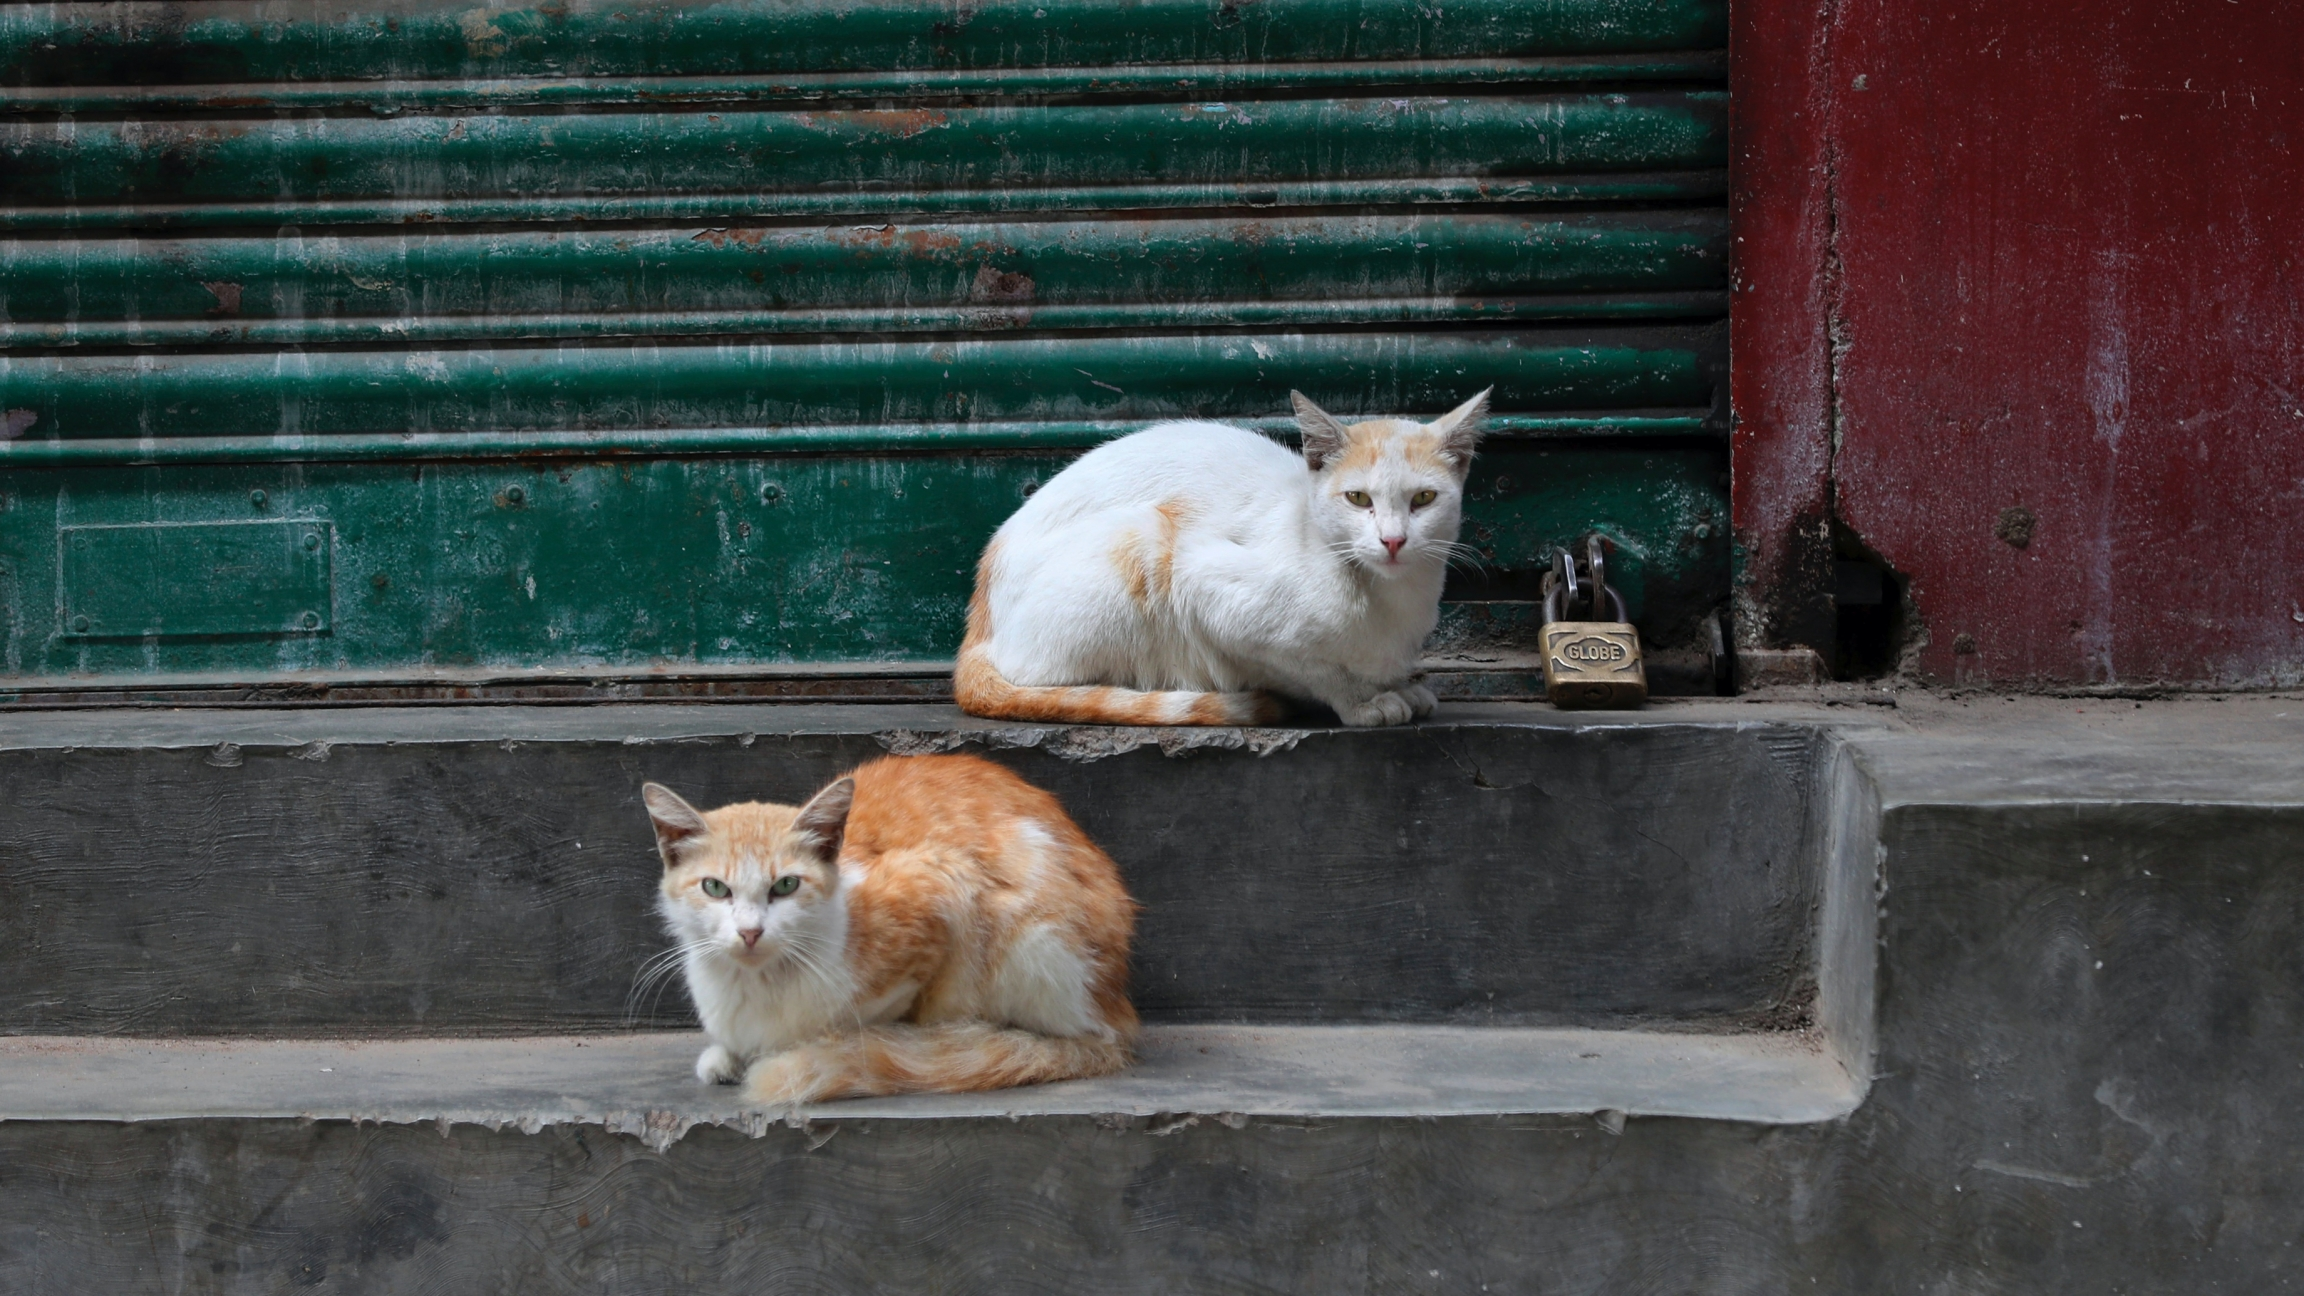 Cats rest outside a closed shop on cement steps with a red and green backdrop.